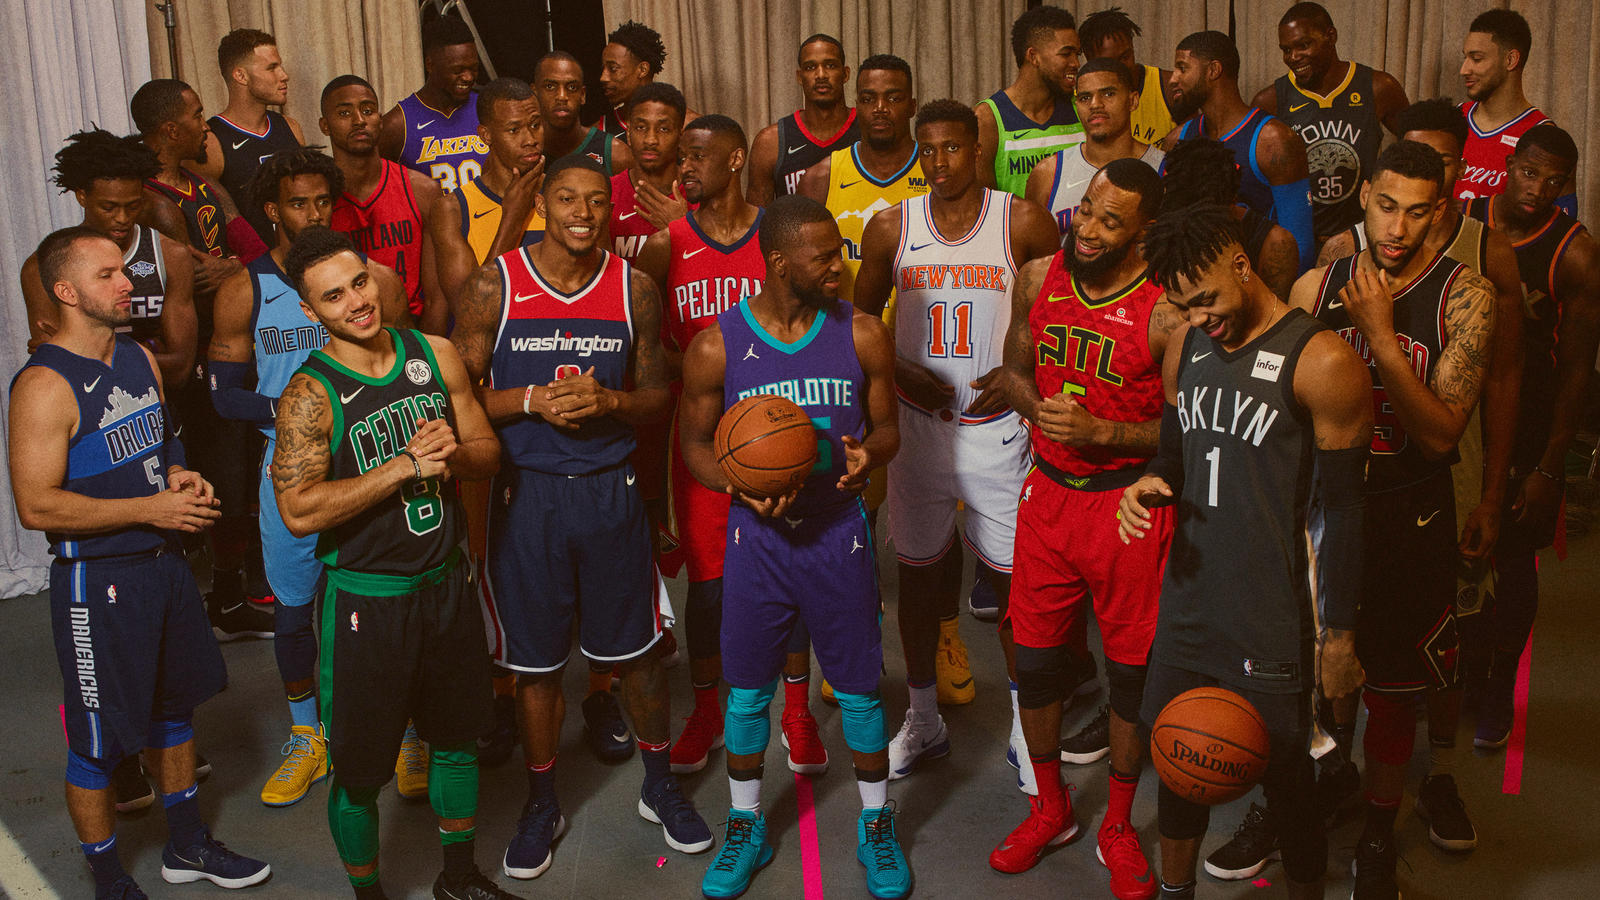 Nike_NBA_Event_Launch_Group_Photo_hd_1600